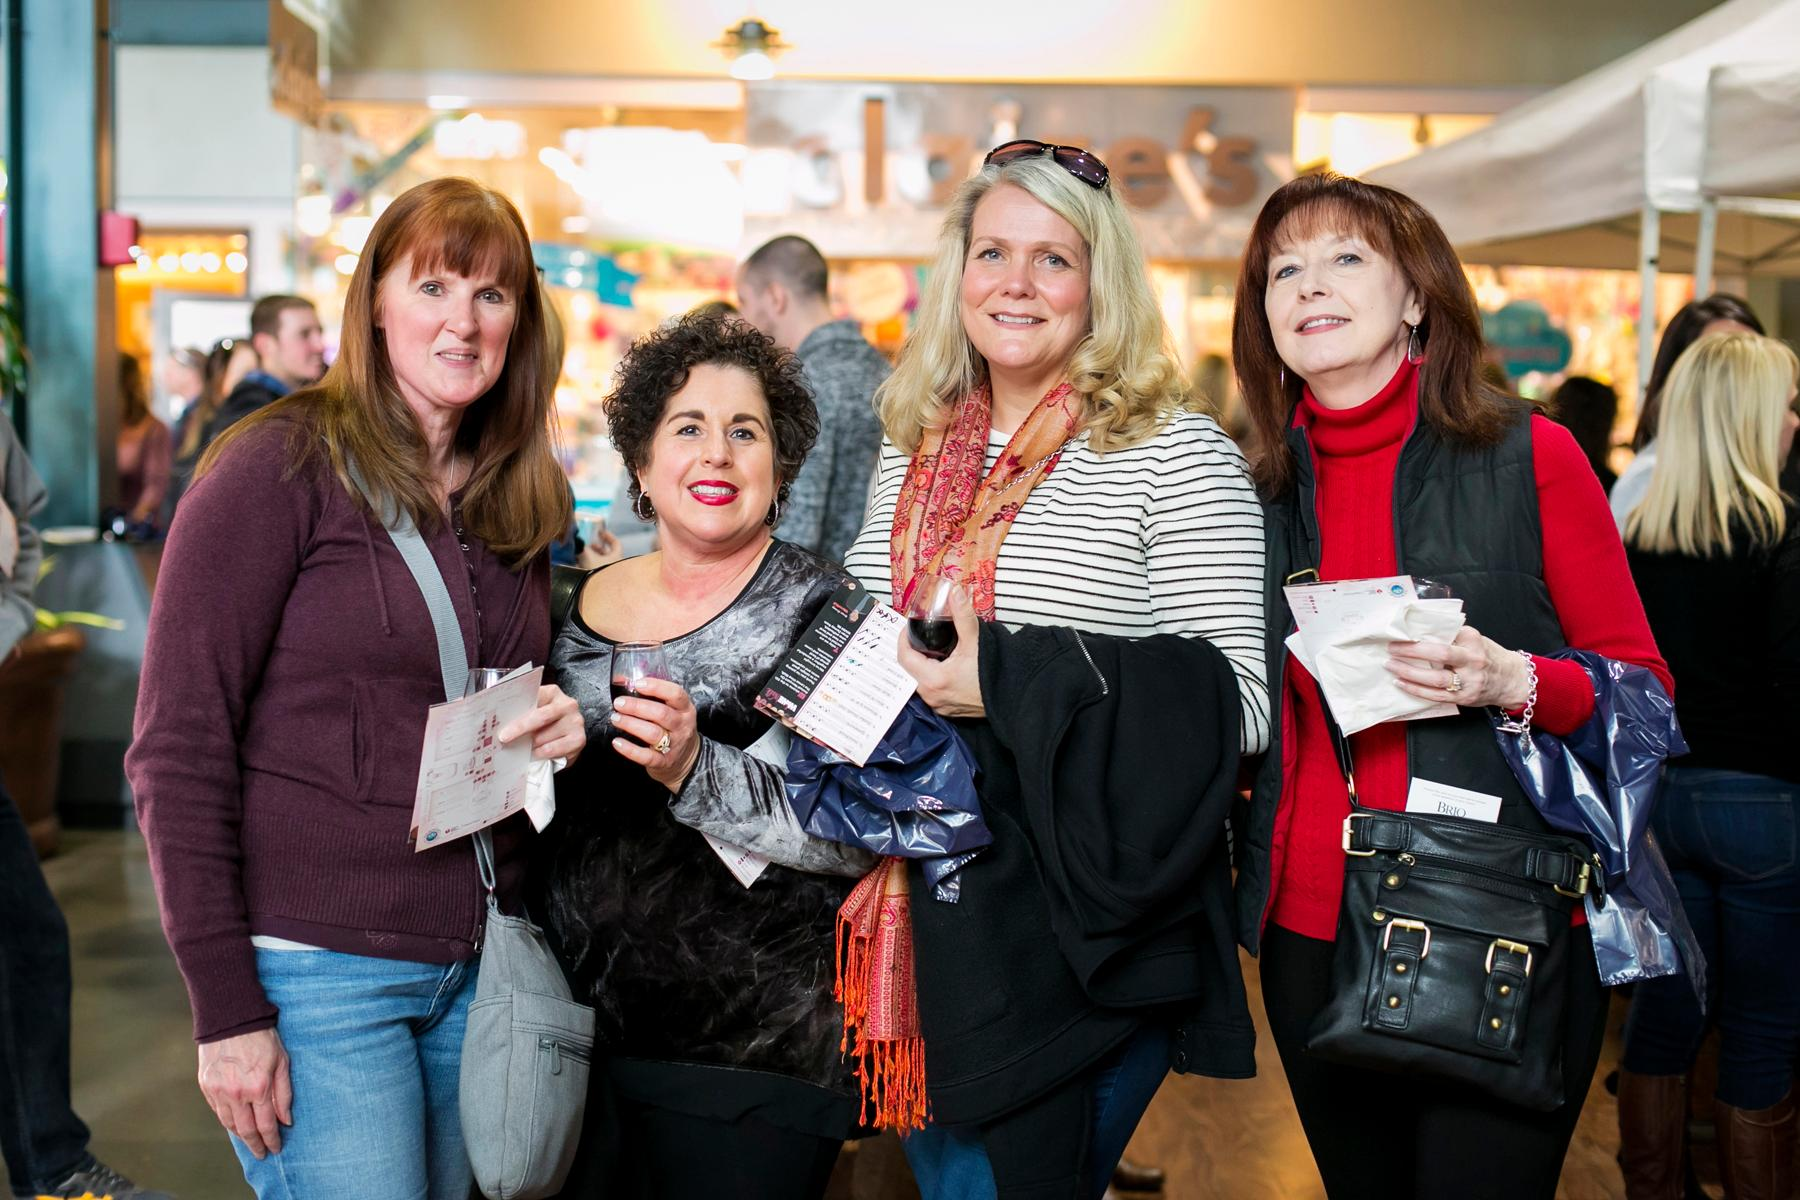 Tina Littlejohn, Lisa Peterson, Jill Herald, and Barb McMillin / Image: Mike Bresnen Photography<p></p>